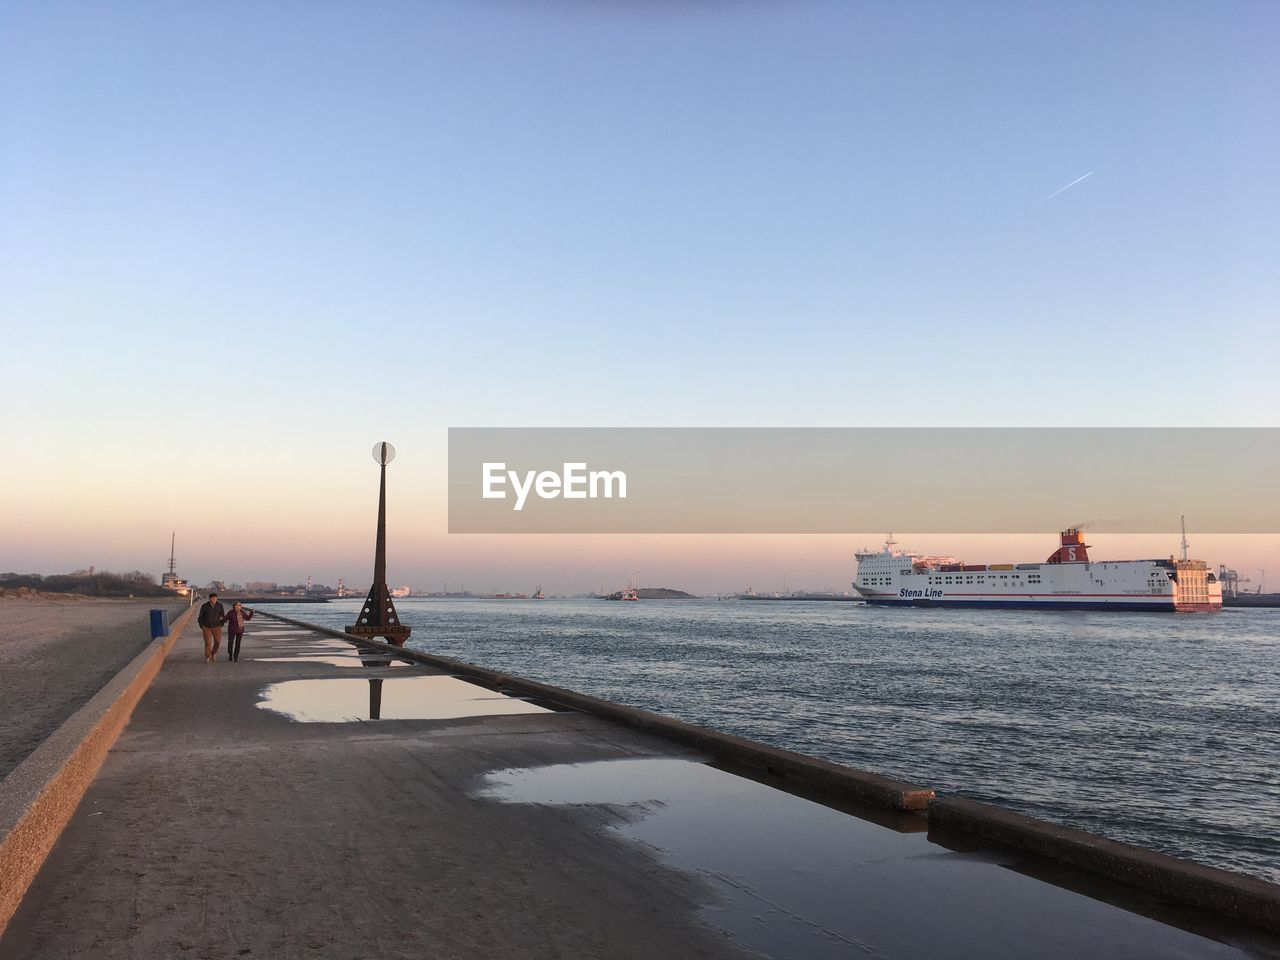 water, sky, transportation, sea, nautical vessel, mode of transportation, sunset, copy space, clear sky, nature, incidental people, scenics - nature, architecture, beauty in nature, outdoors, pier, built structure, road, travel